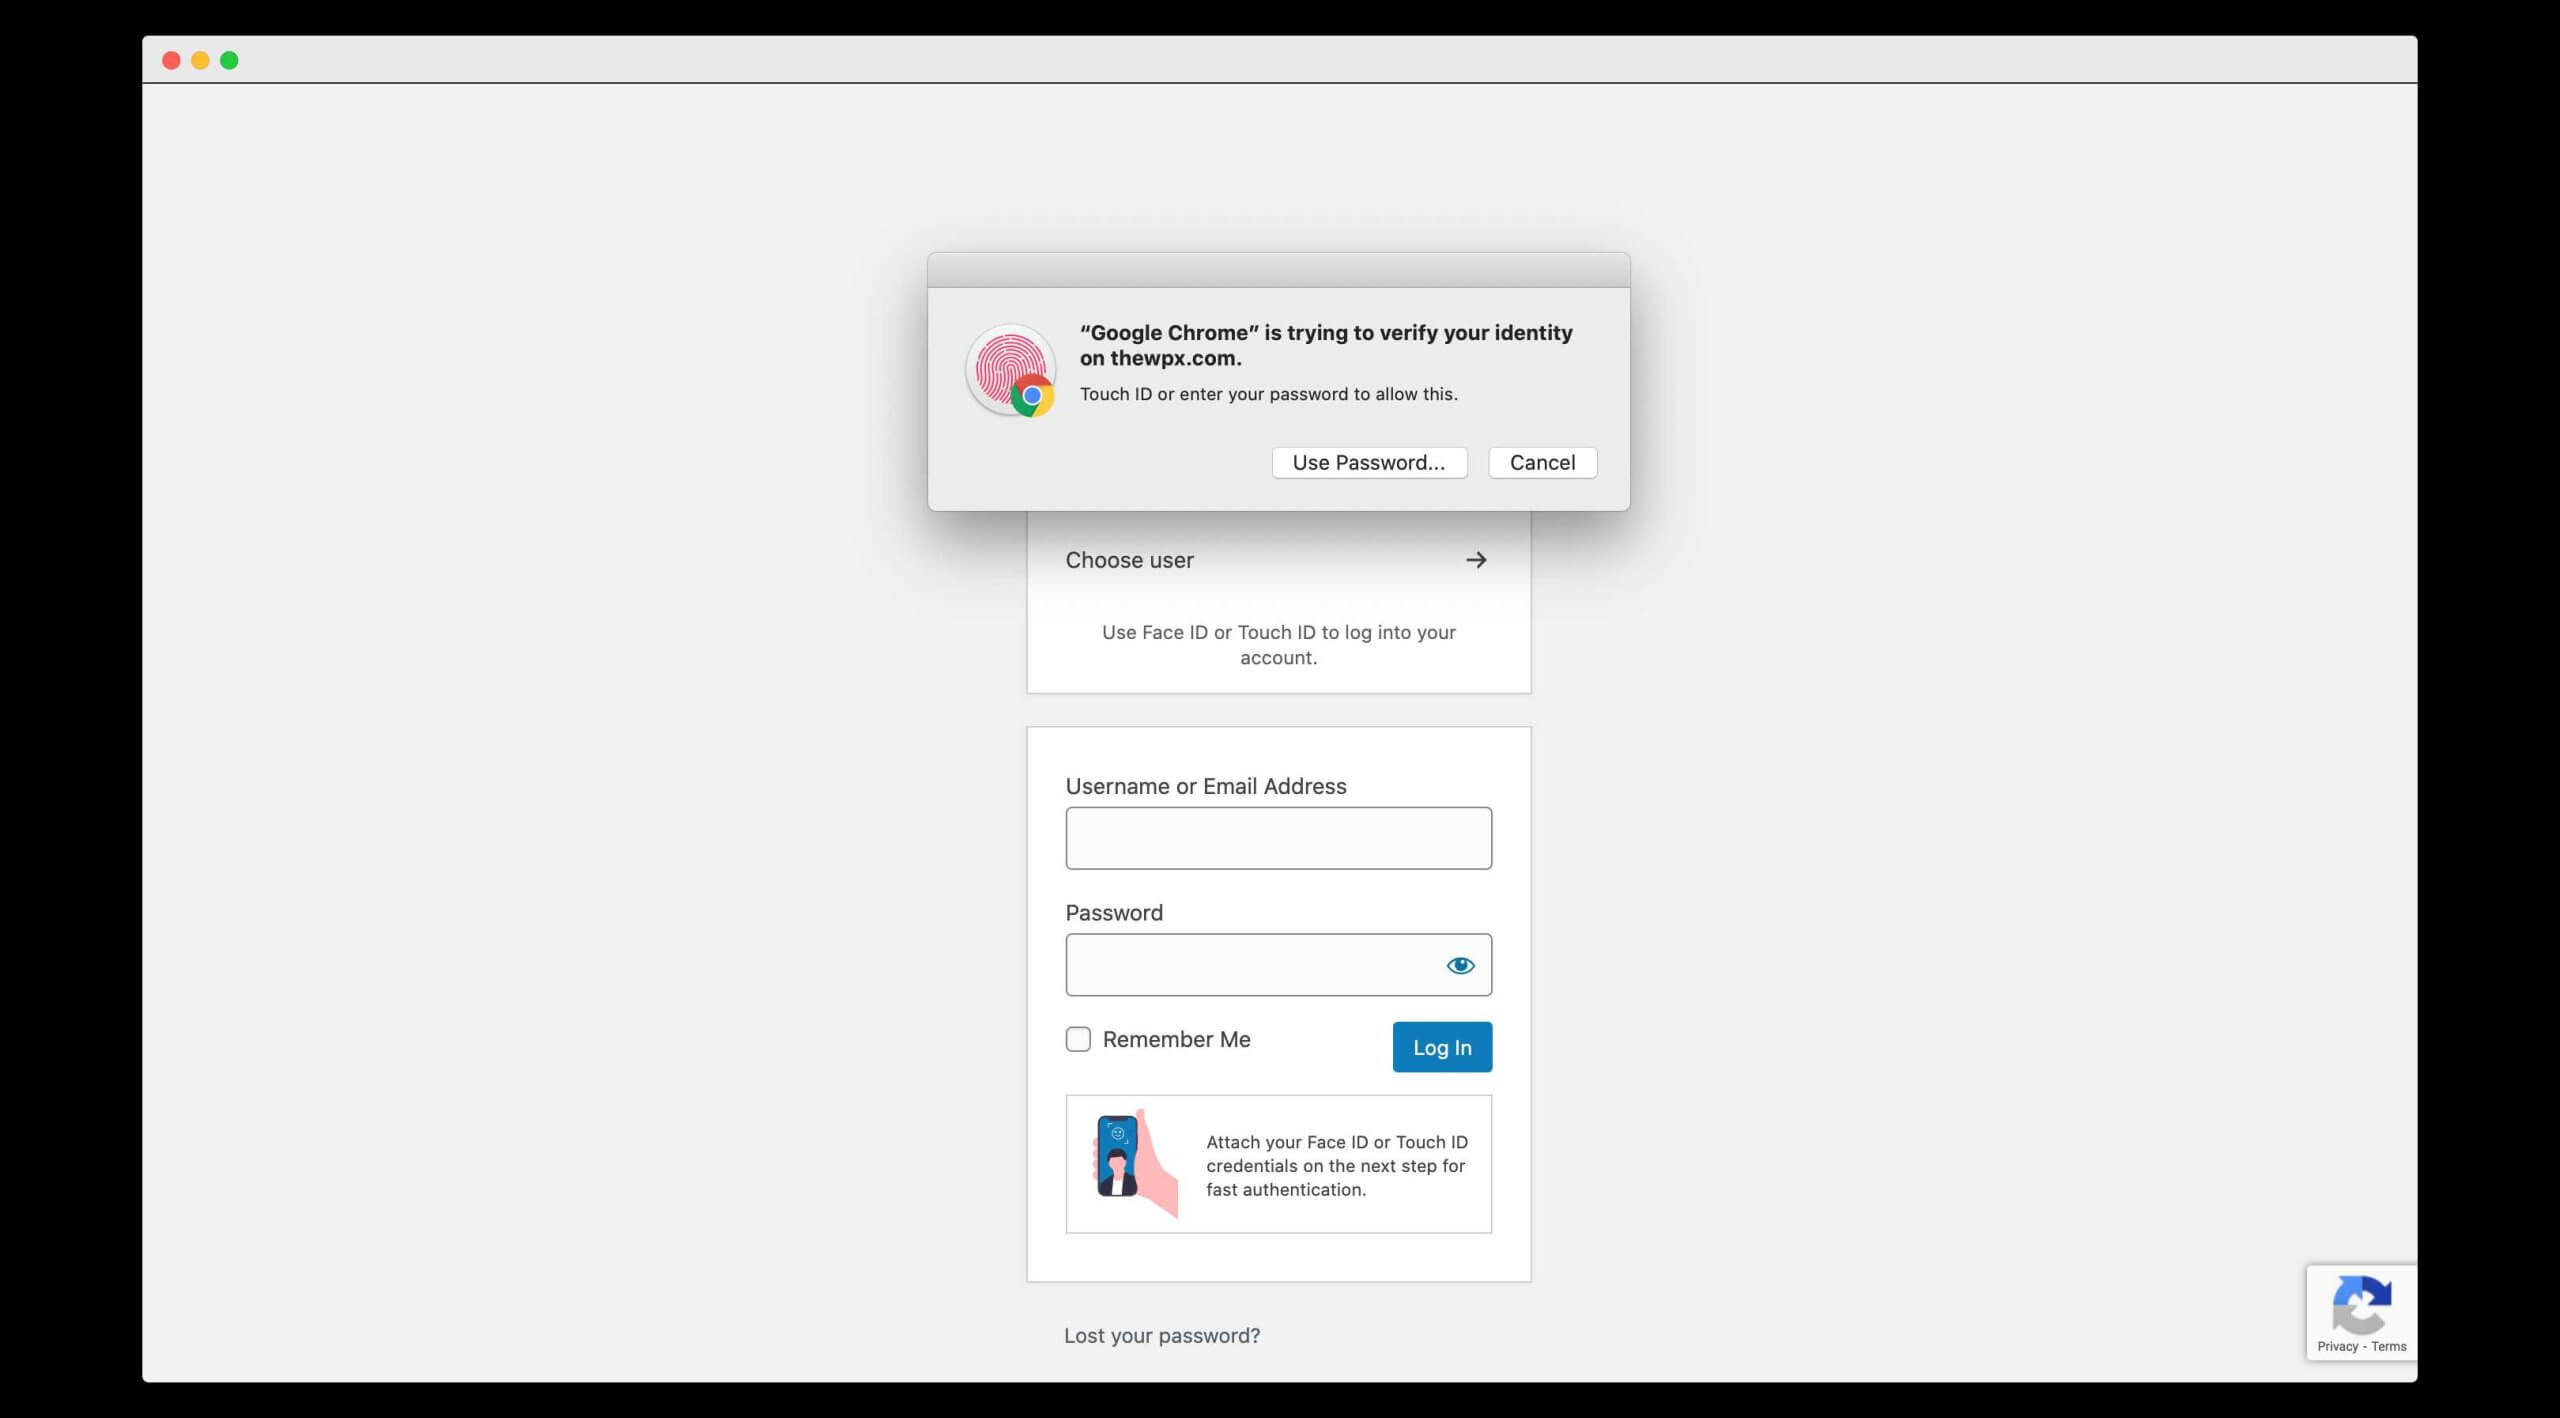 my website, thewpx with passwordless authentication (using touch id)